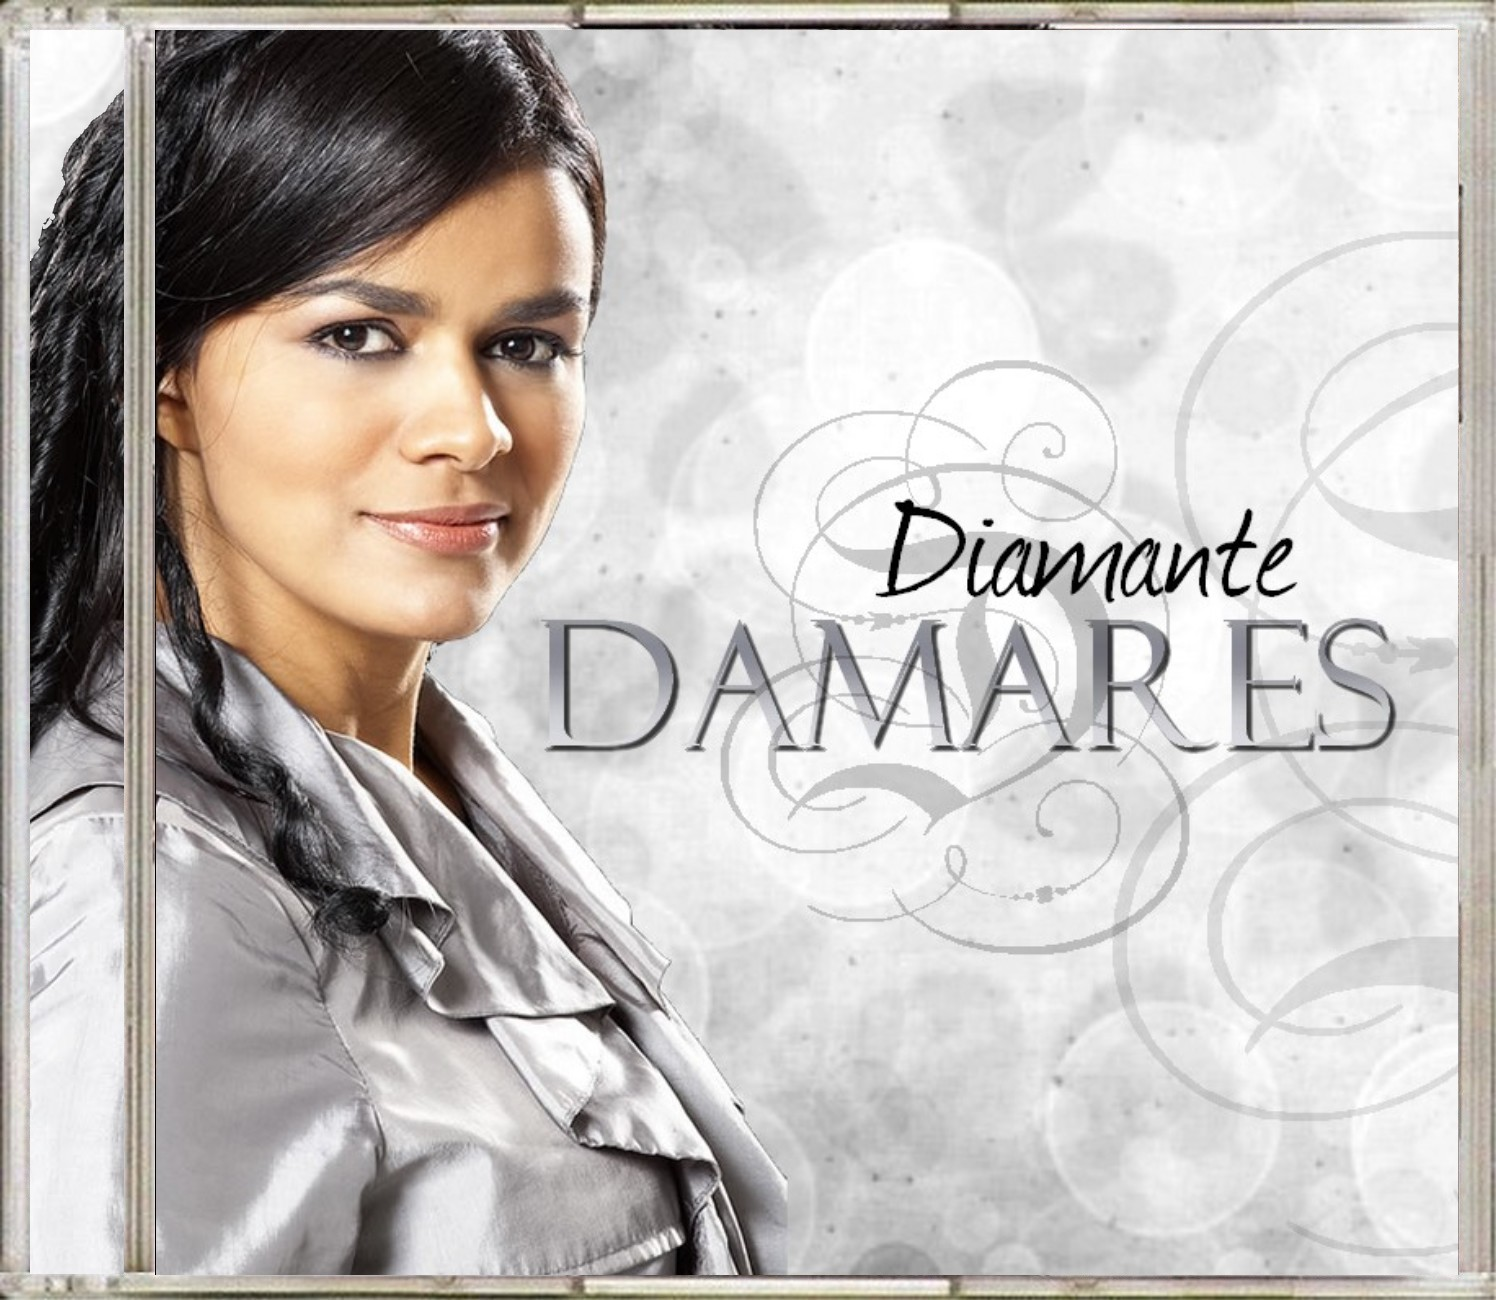 o cd da damares diamante